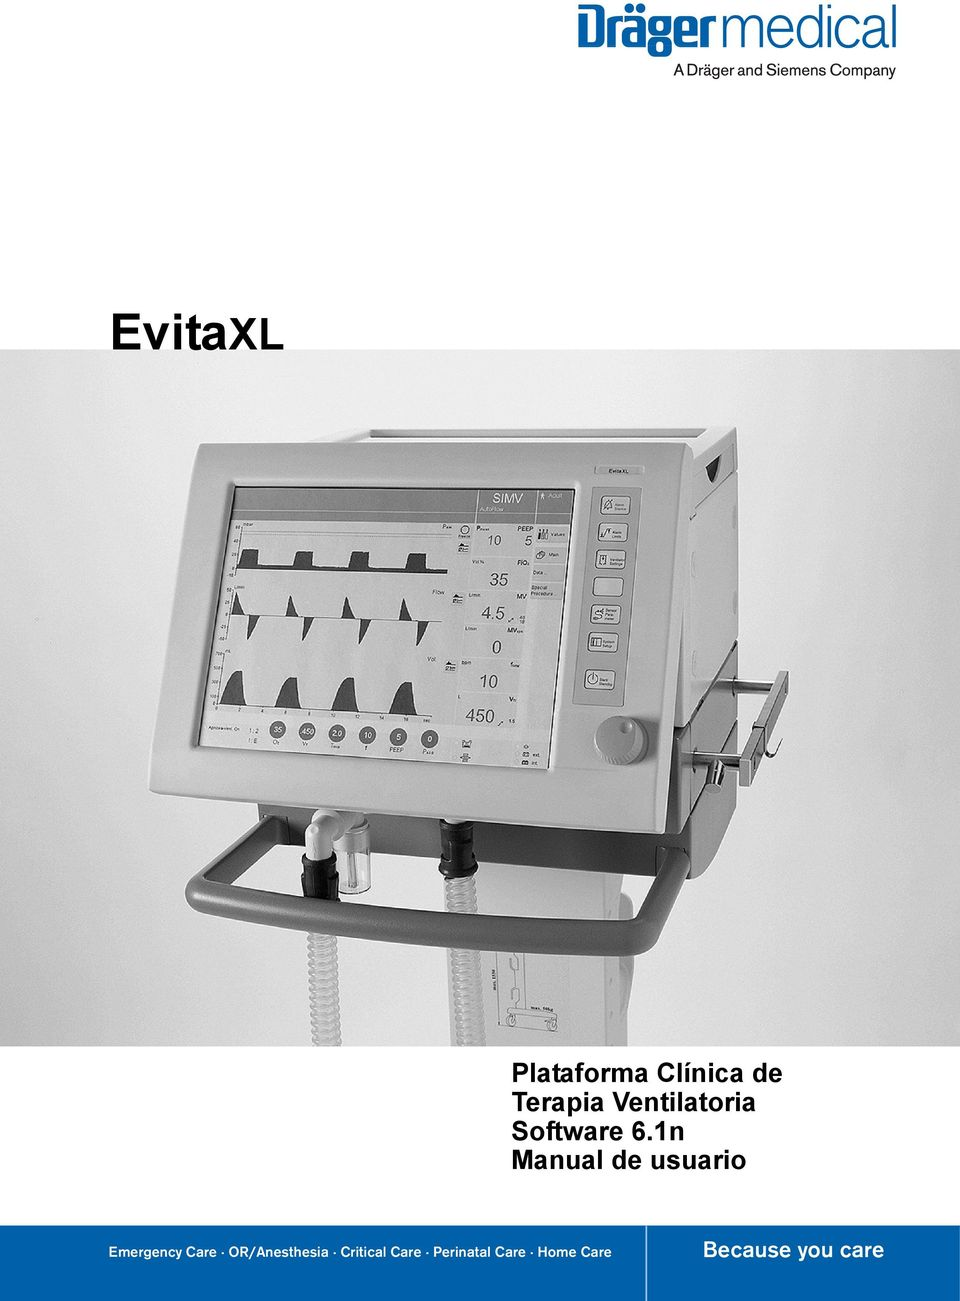 1n Manual de usuario Emergency Care